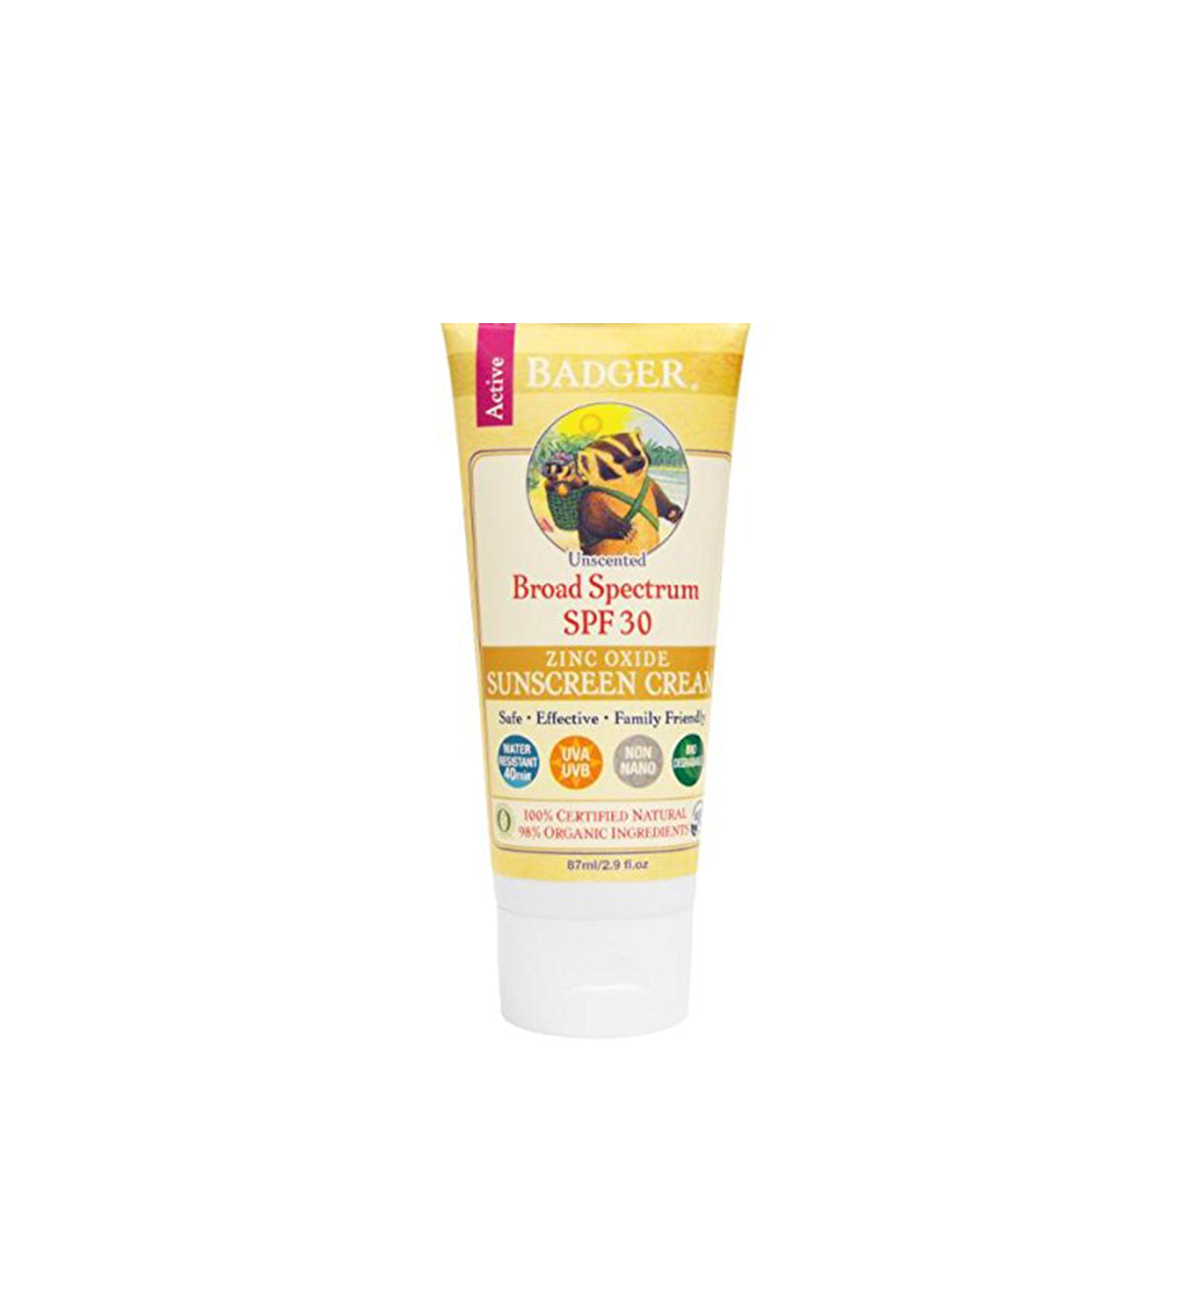 Reef Safe Sunscreen, Badger SPF 30 Unscented Sunscreen Cream